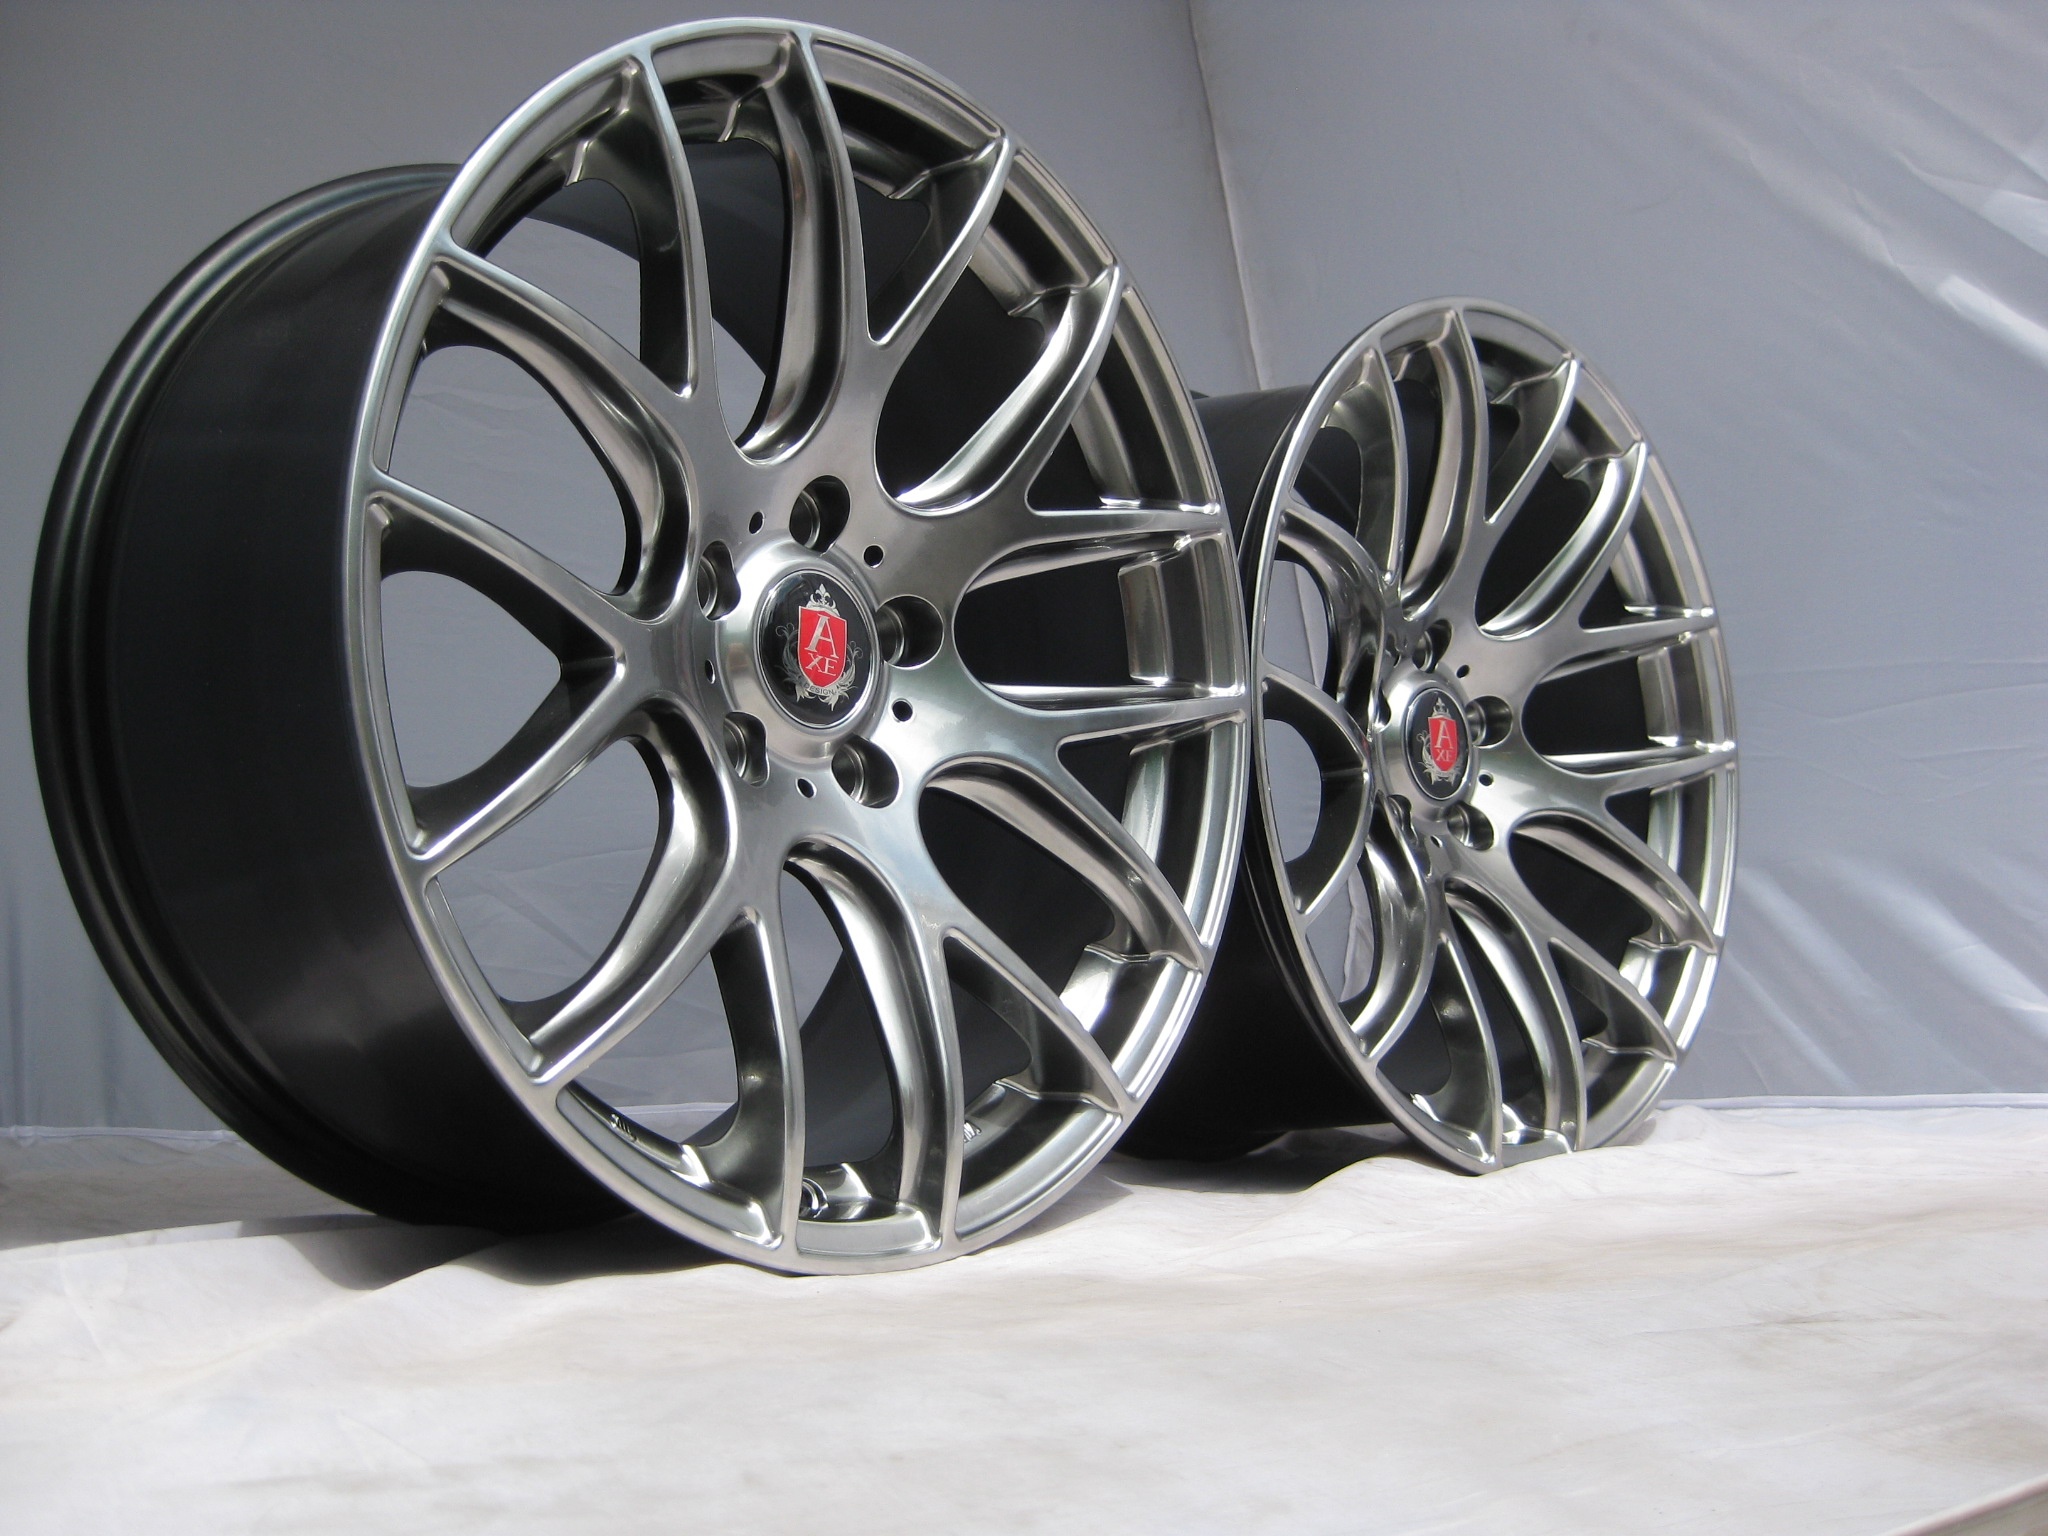 New 19 Quot Axe Cs Lite Alloys In Hyper Black With Very Deep Concave 9 5 Quot Rears Bm Autosport